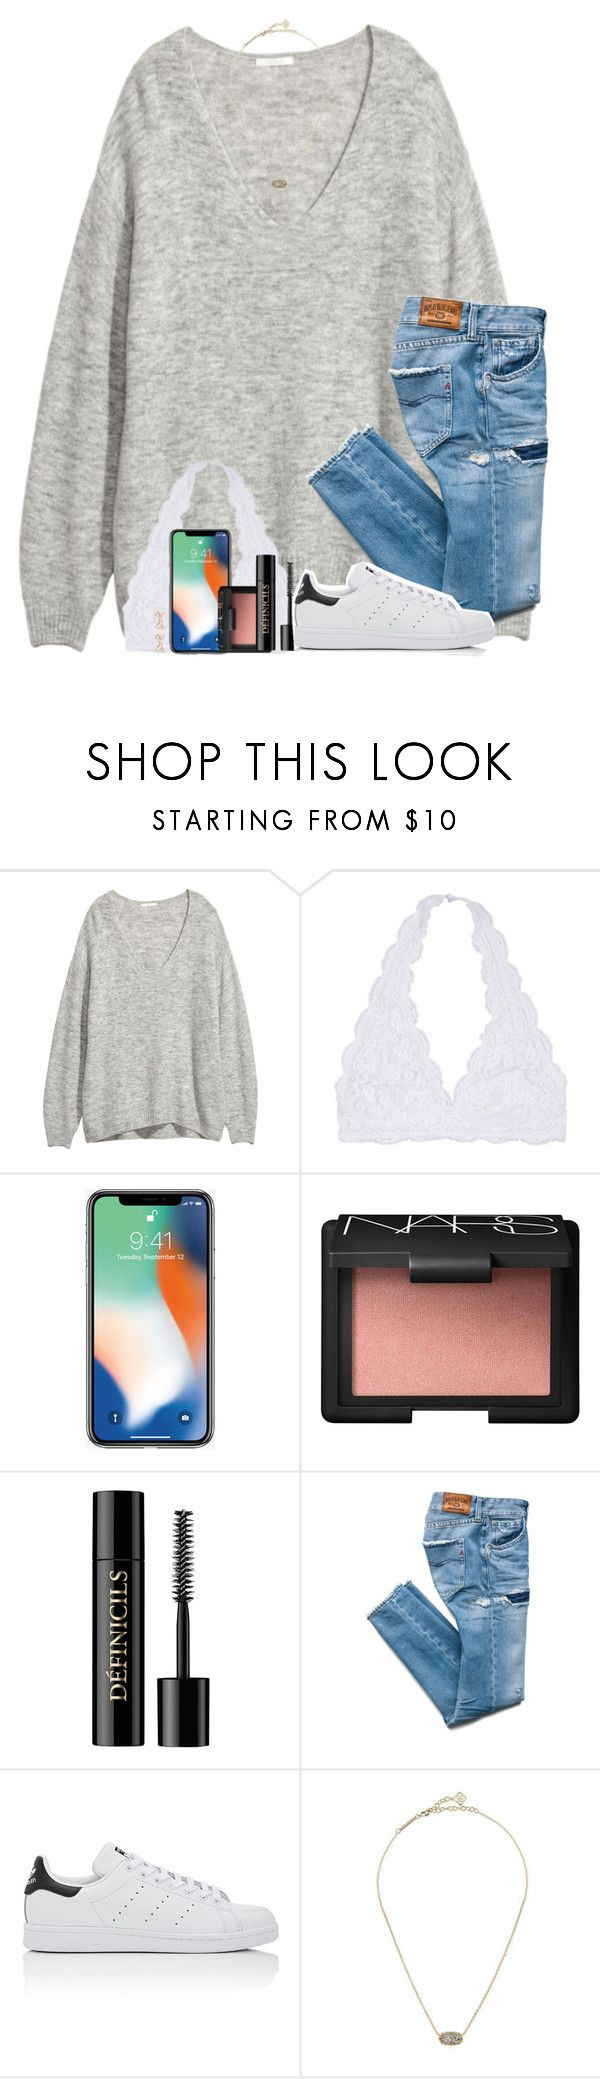 """Going thrifting with @maggienorris today!"" by amberfmillard-1 ❤ liked on Polyvore featuring NARS Cosmetics, Lancôme, adidas, Kendra Scott and Kate Spade"